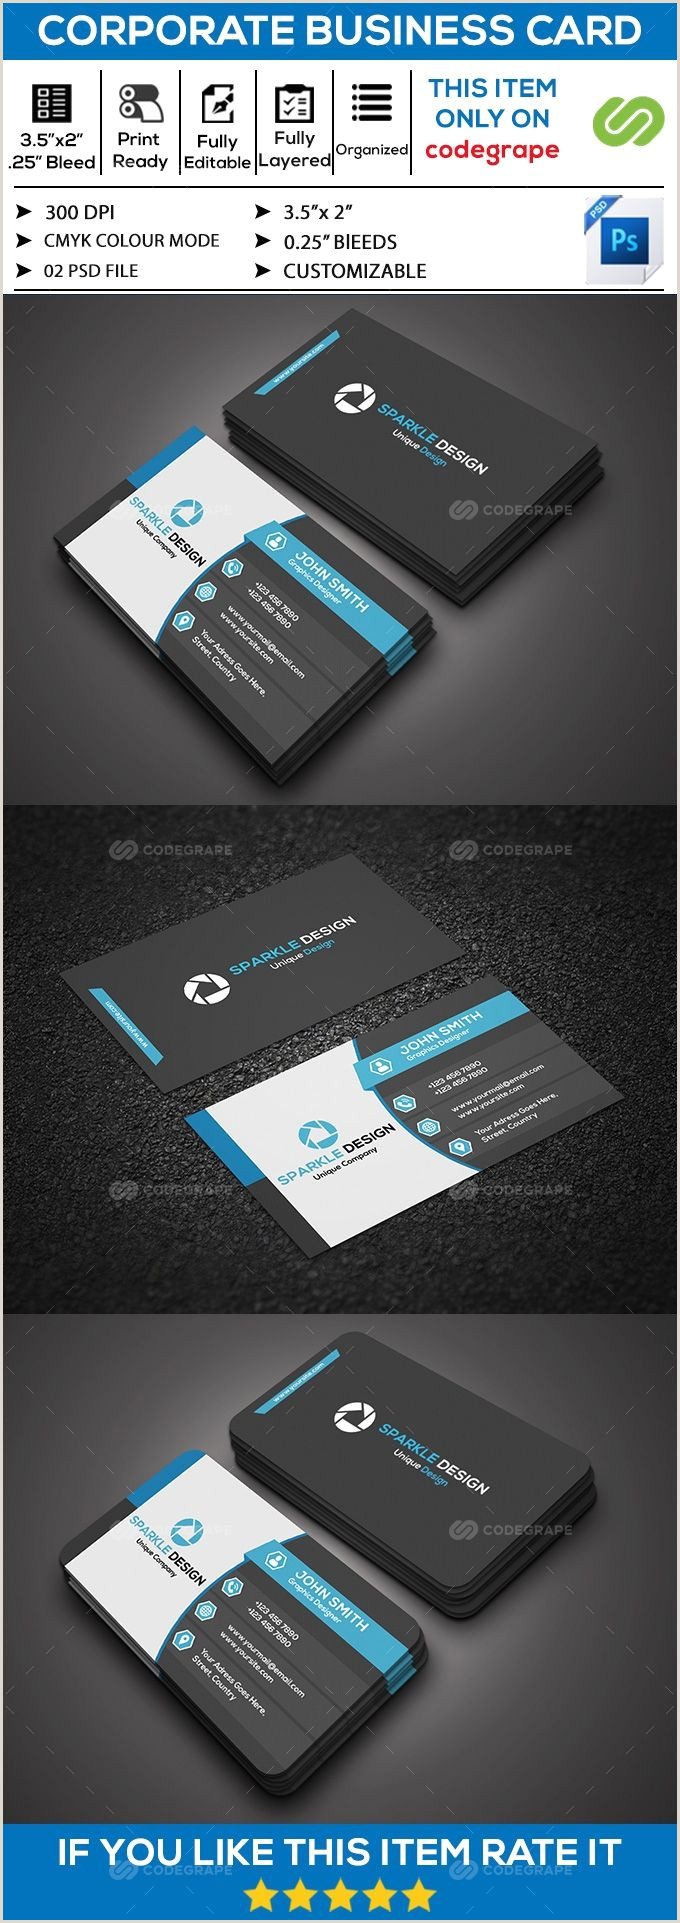 2 Color Business Cards Corporate Business Card